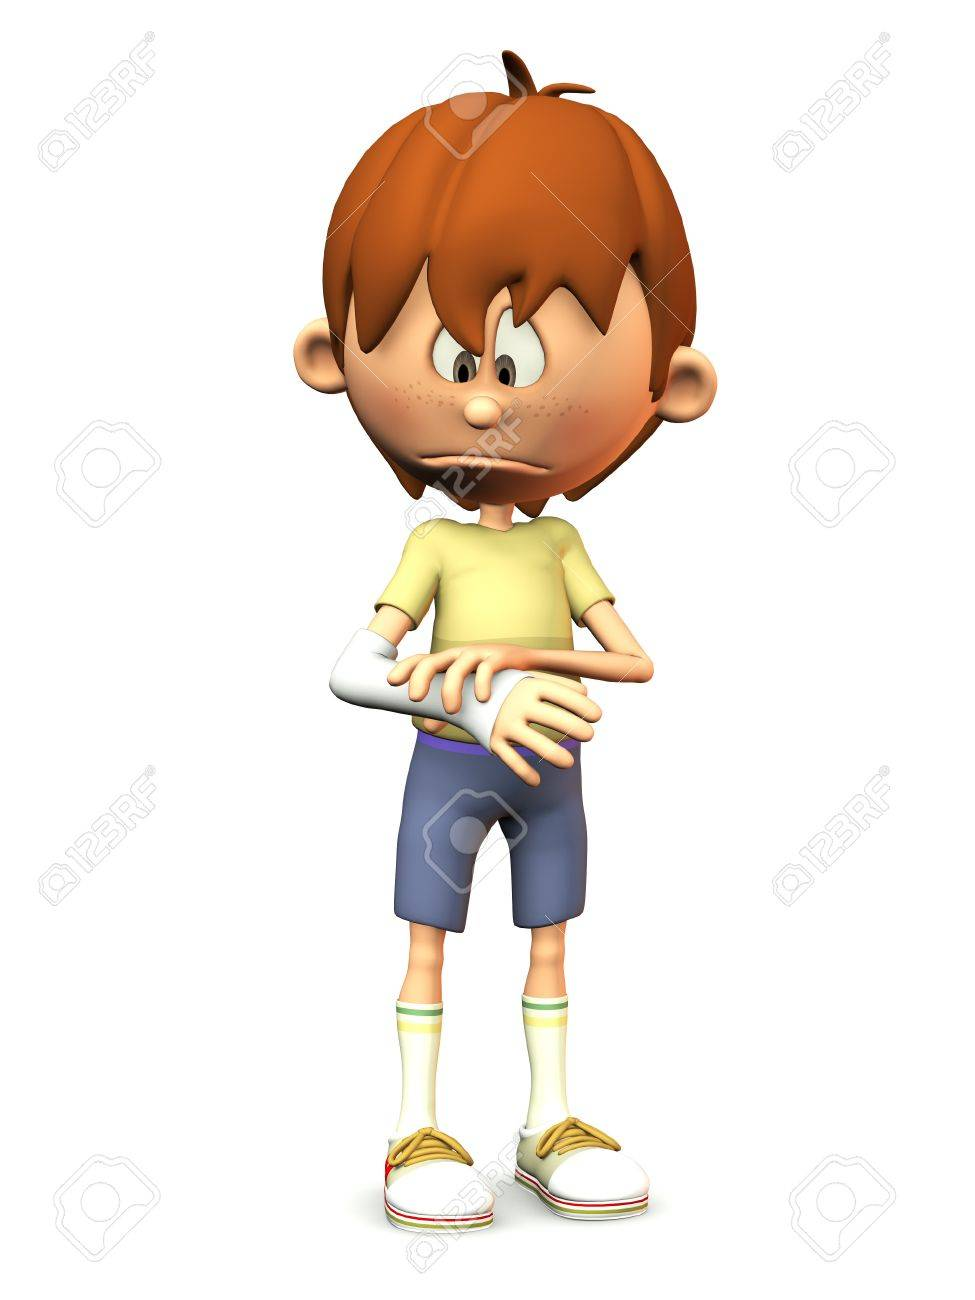 A cartoon boy looking at his broken arm and looking very sad. White background. Stock Photo - 9604386